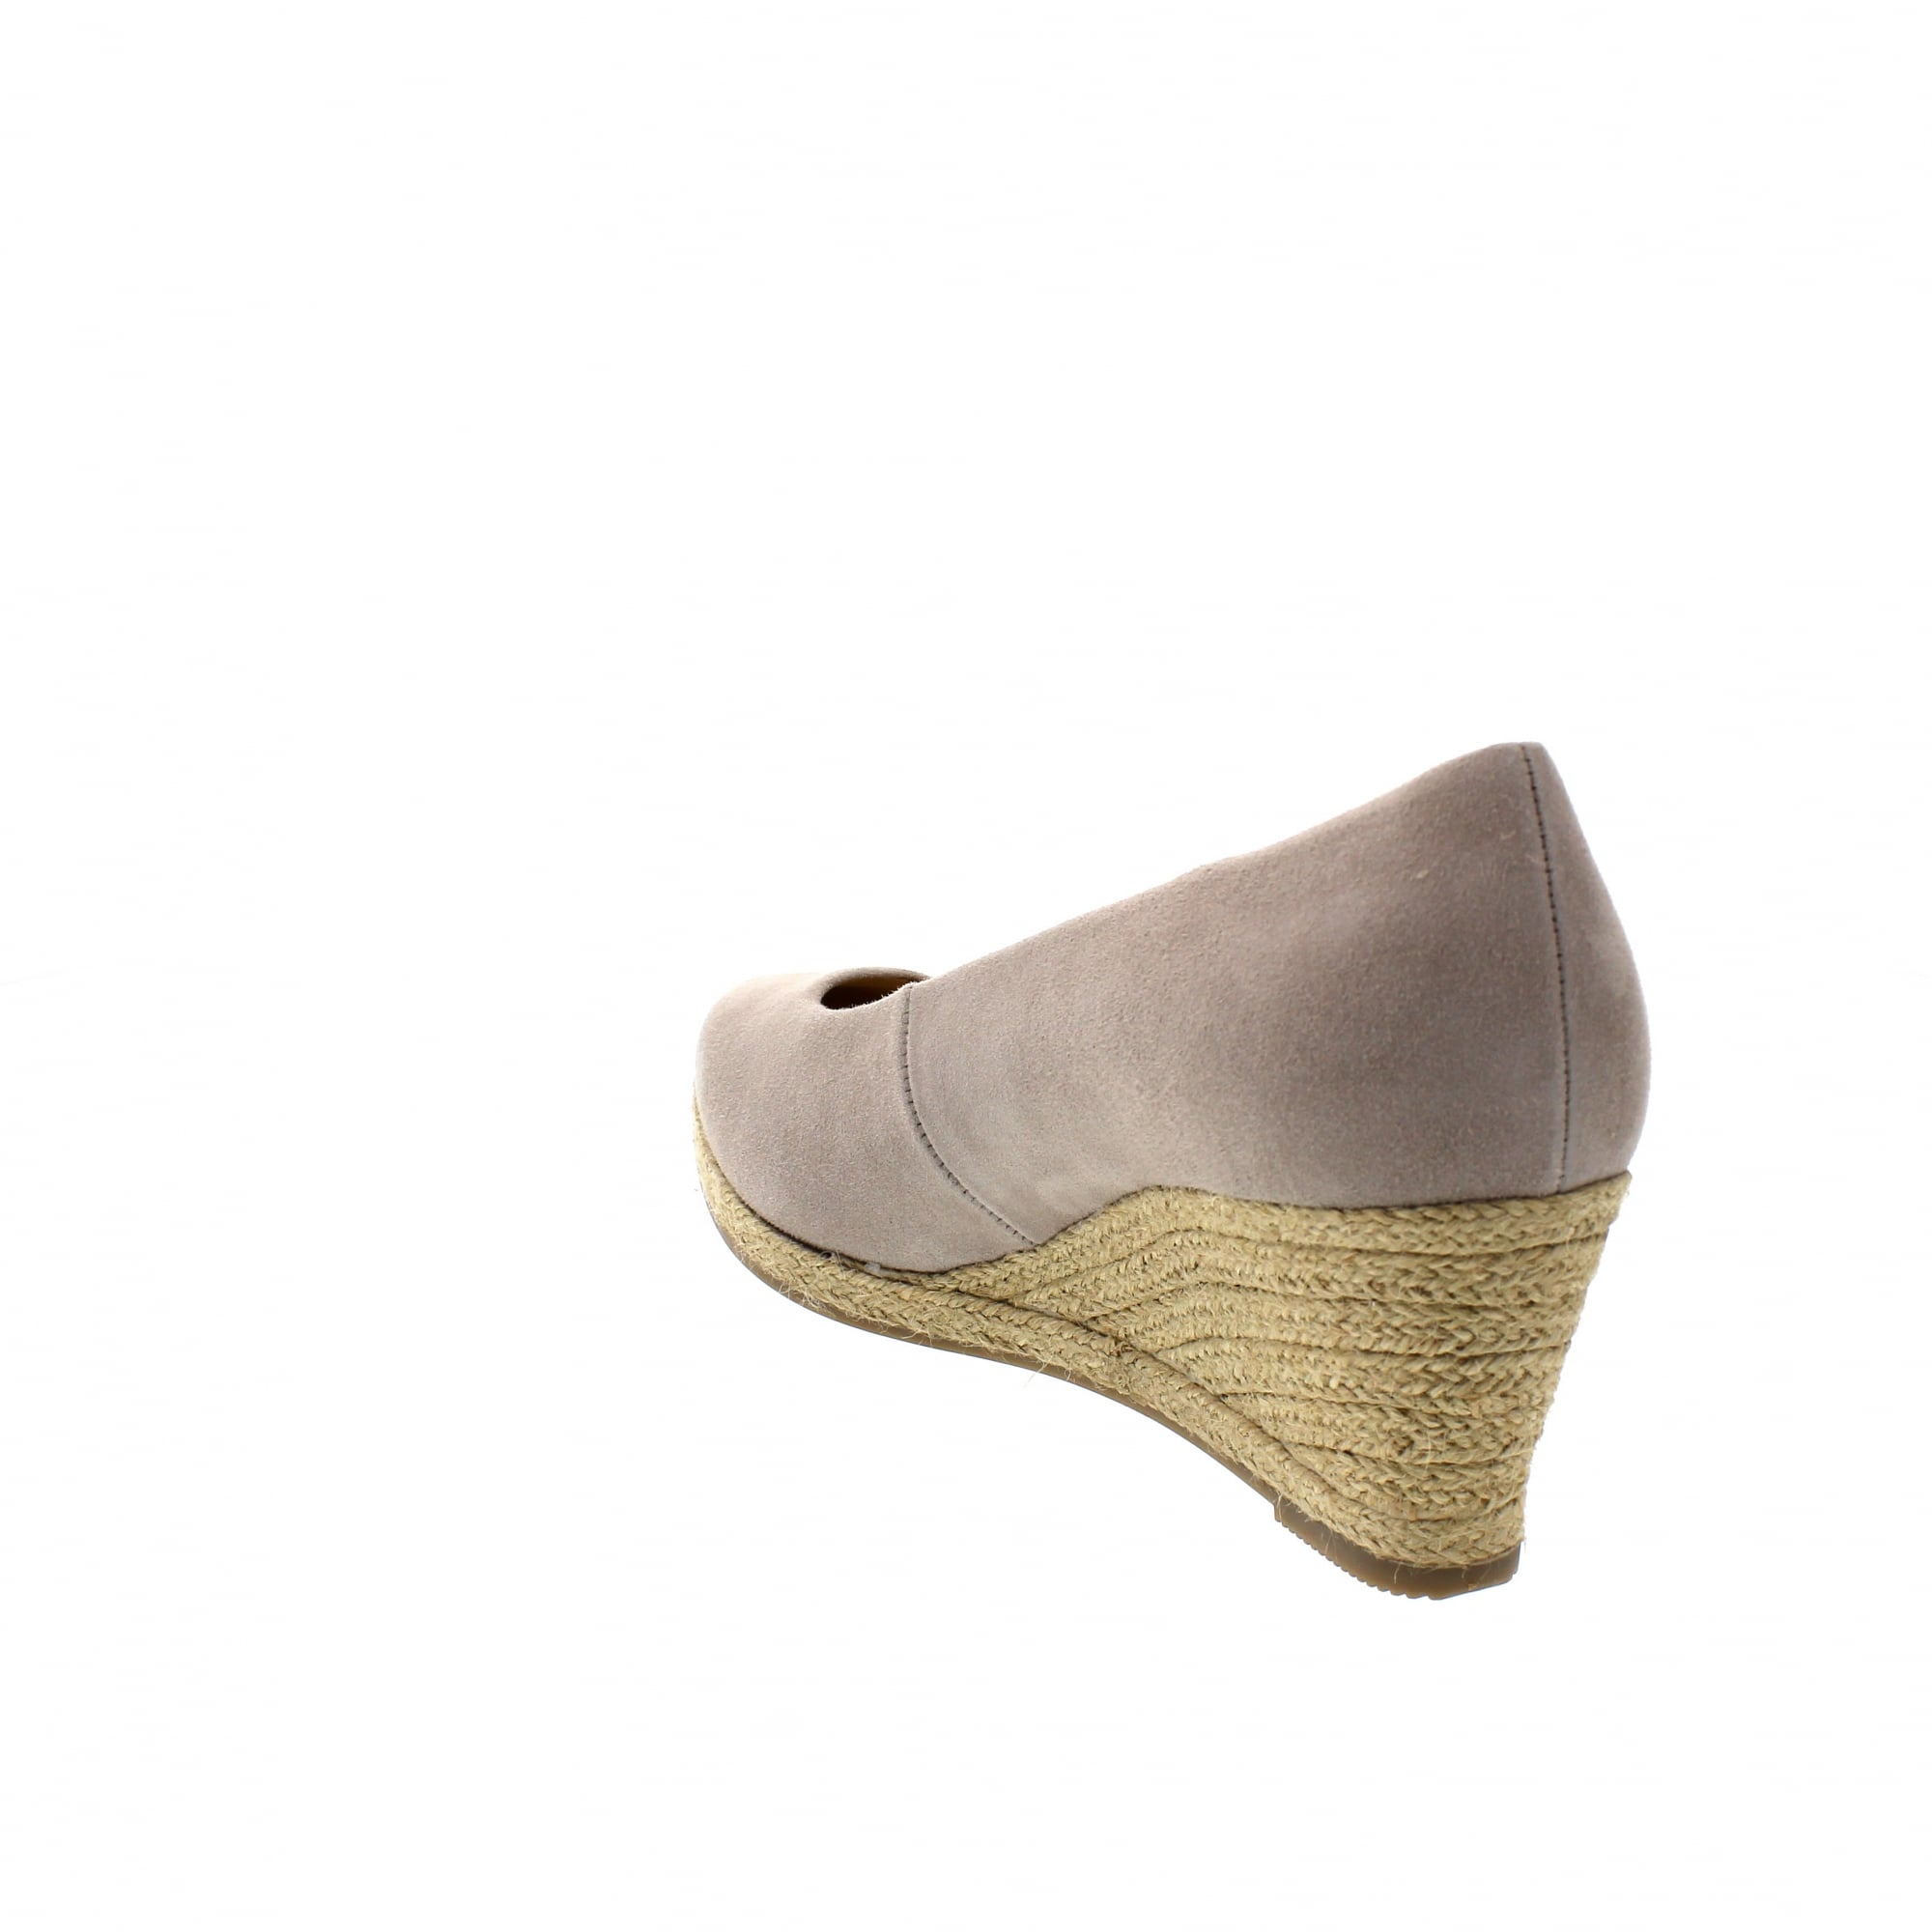 6264f243e0 Gabor Paisley 84-440-13 Beige Suede Womens Wedge Pumps | Rogerson Shoes